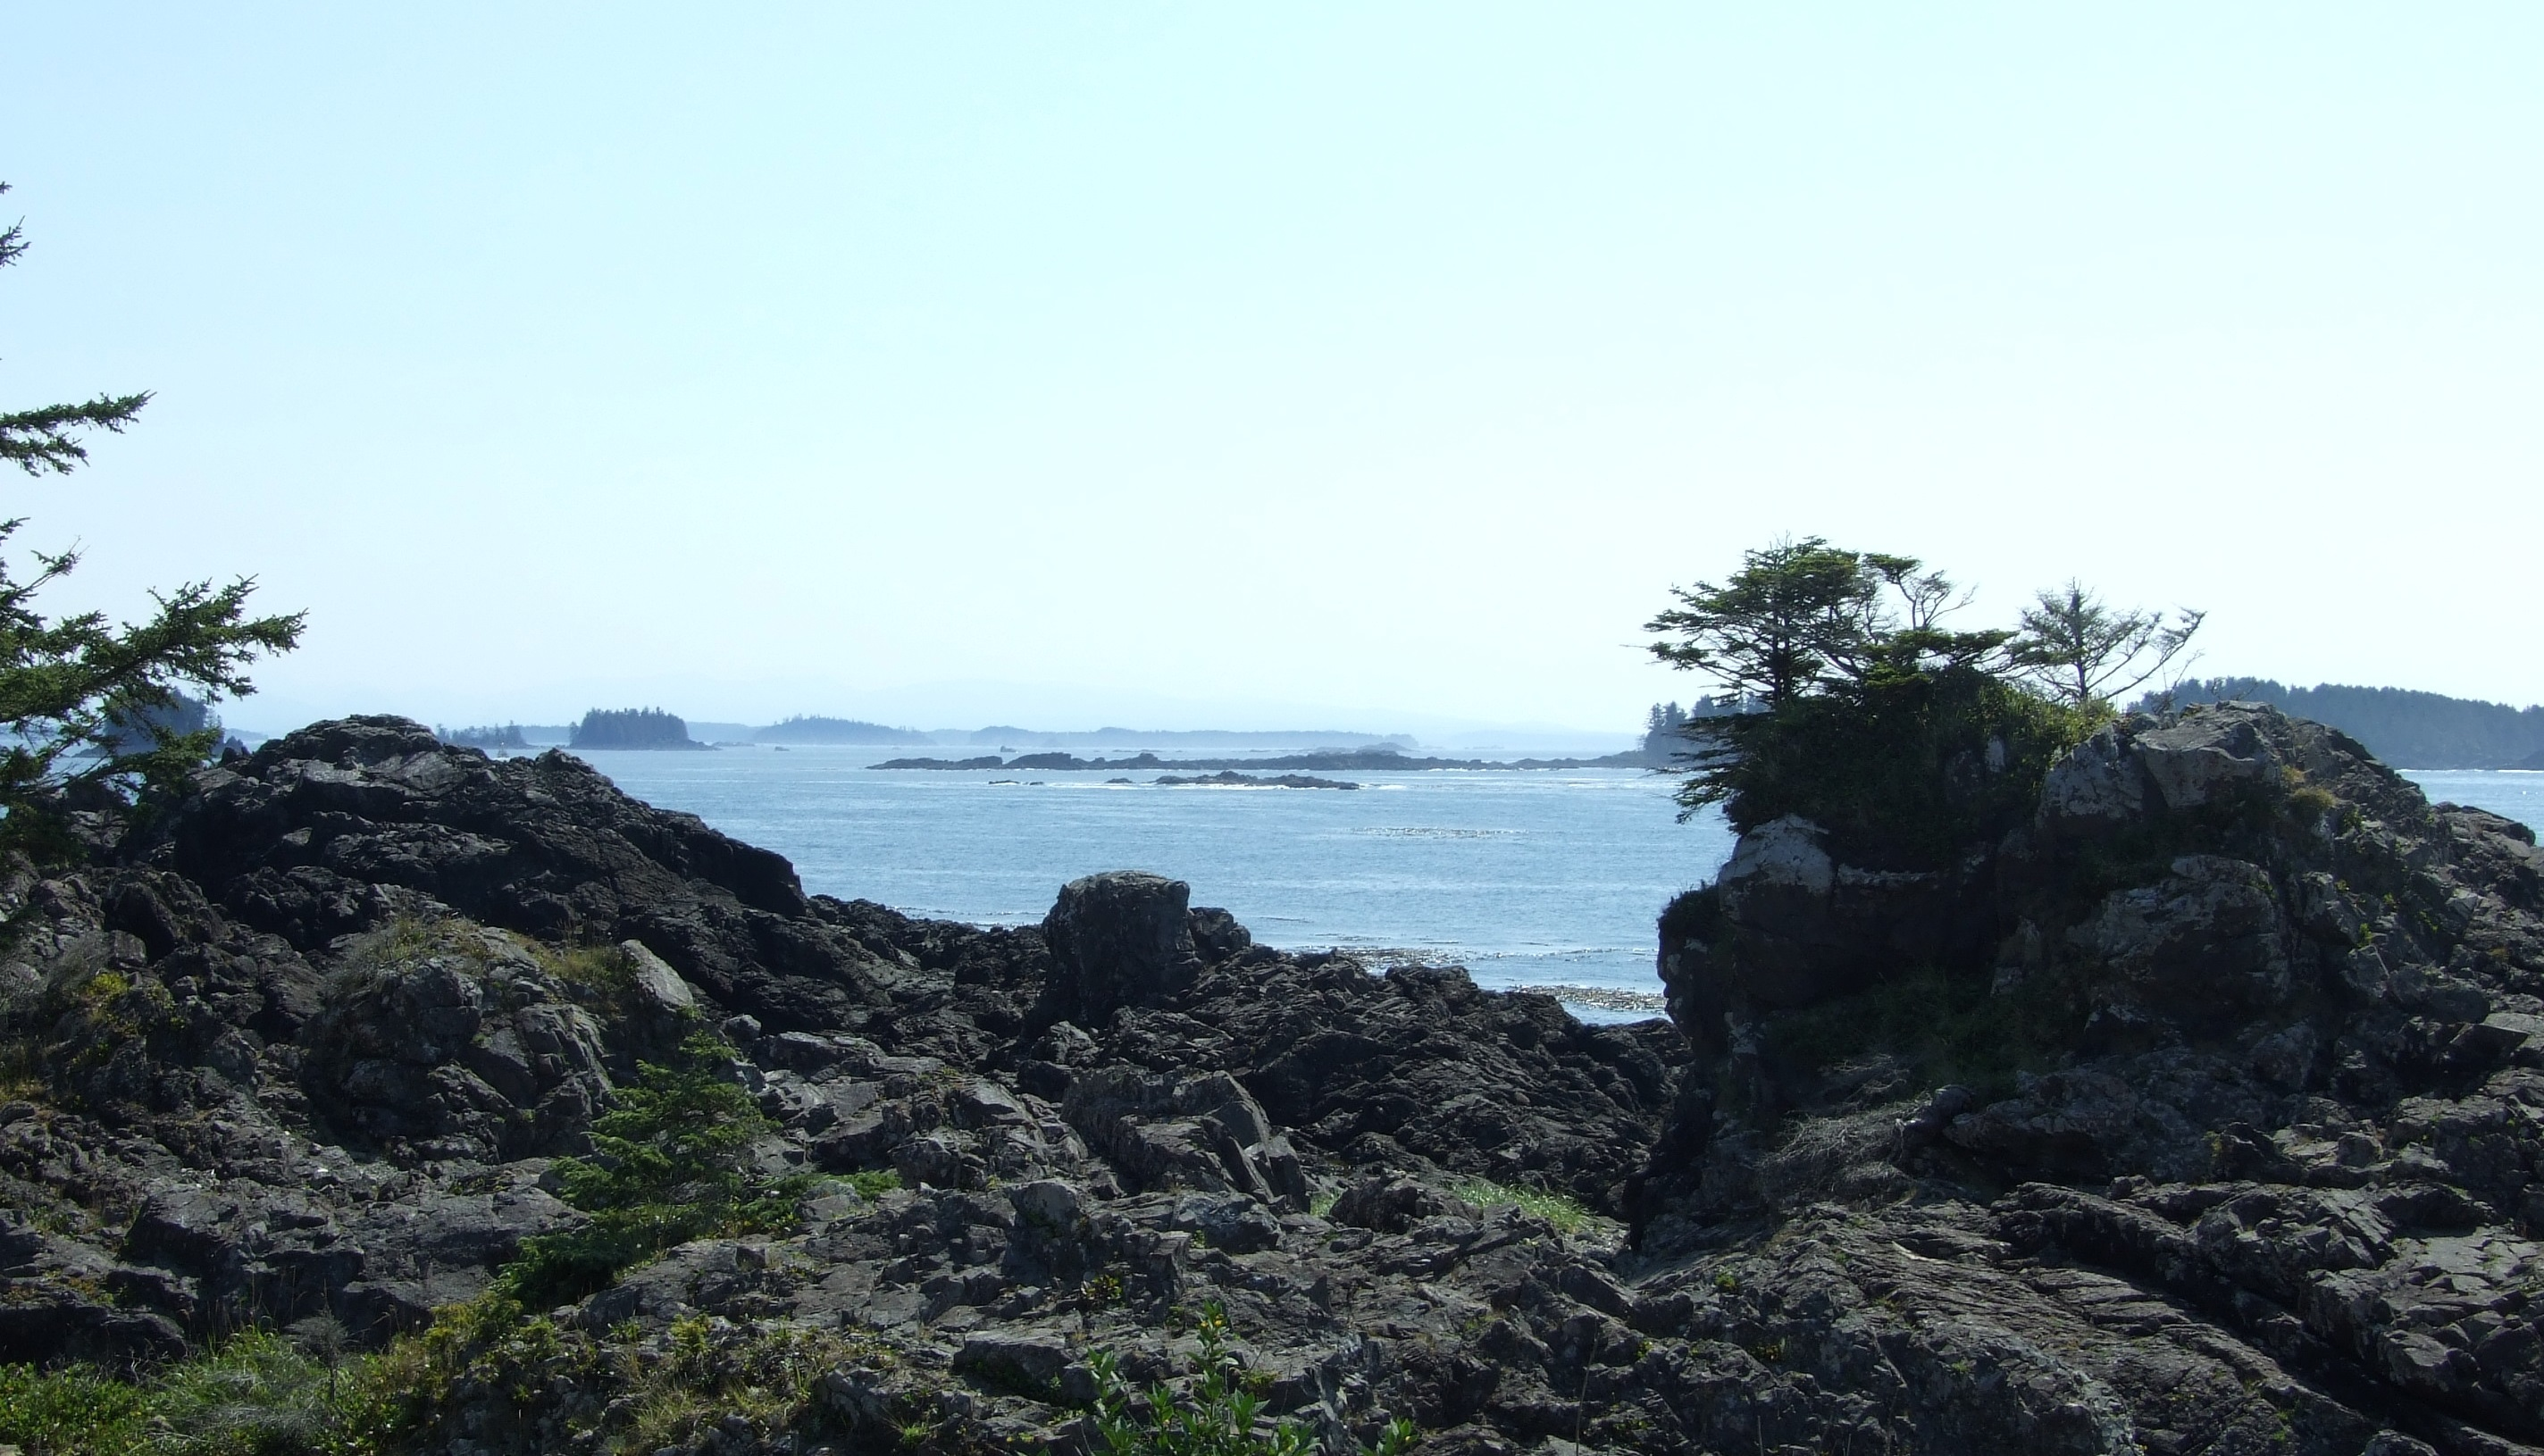 Having passed the Amphitrite Lighthouse, our final views of the Pacific from the trail were of some of the hundreds of islands in the 800 km2 (309 mi2) area of Barkley Sound, none of which is bigger than 2 km (1.24 mi.) across.